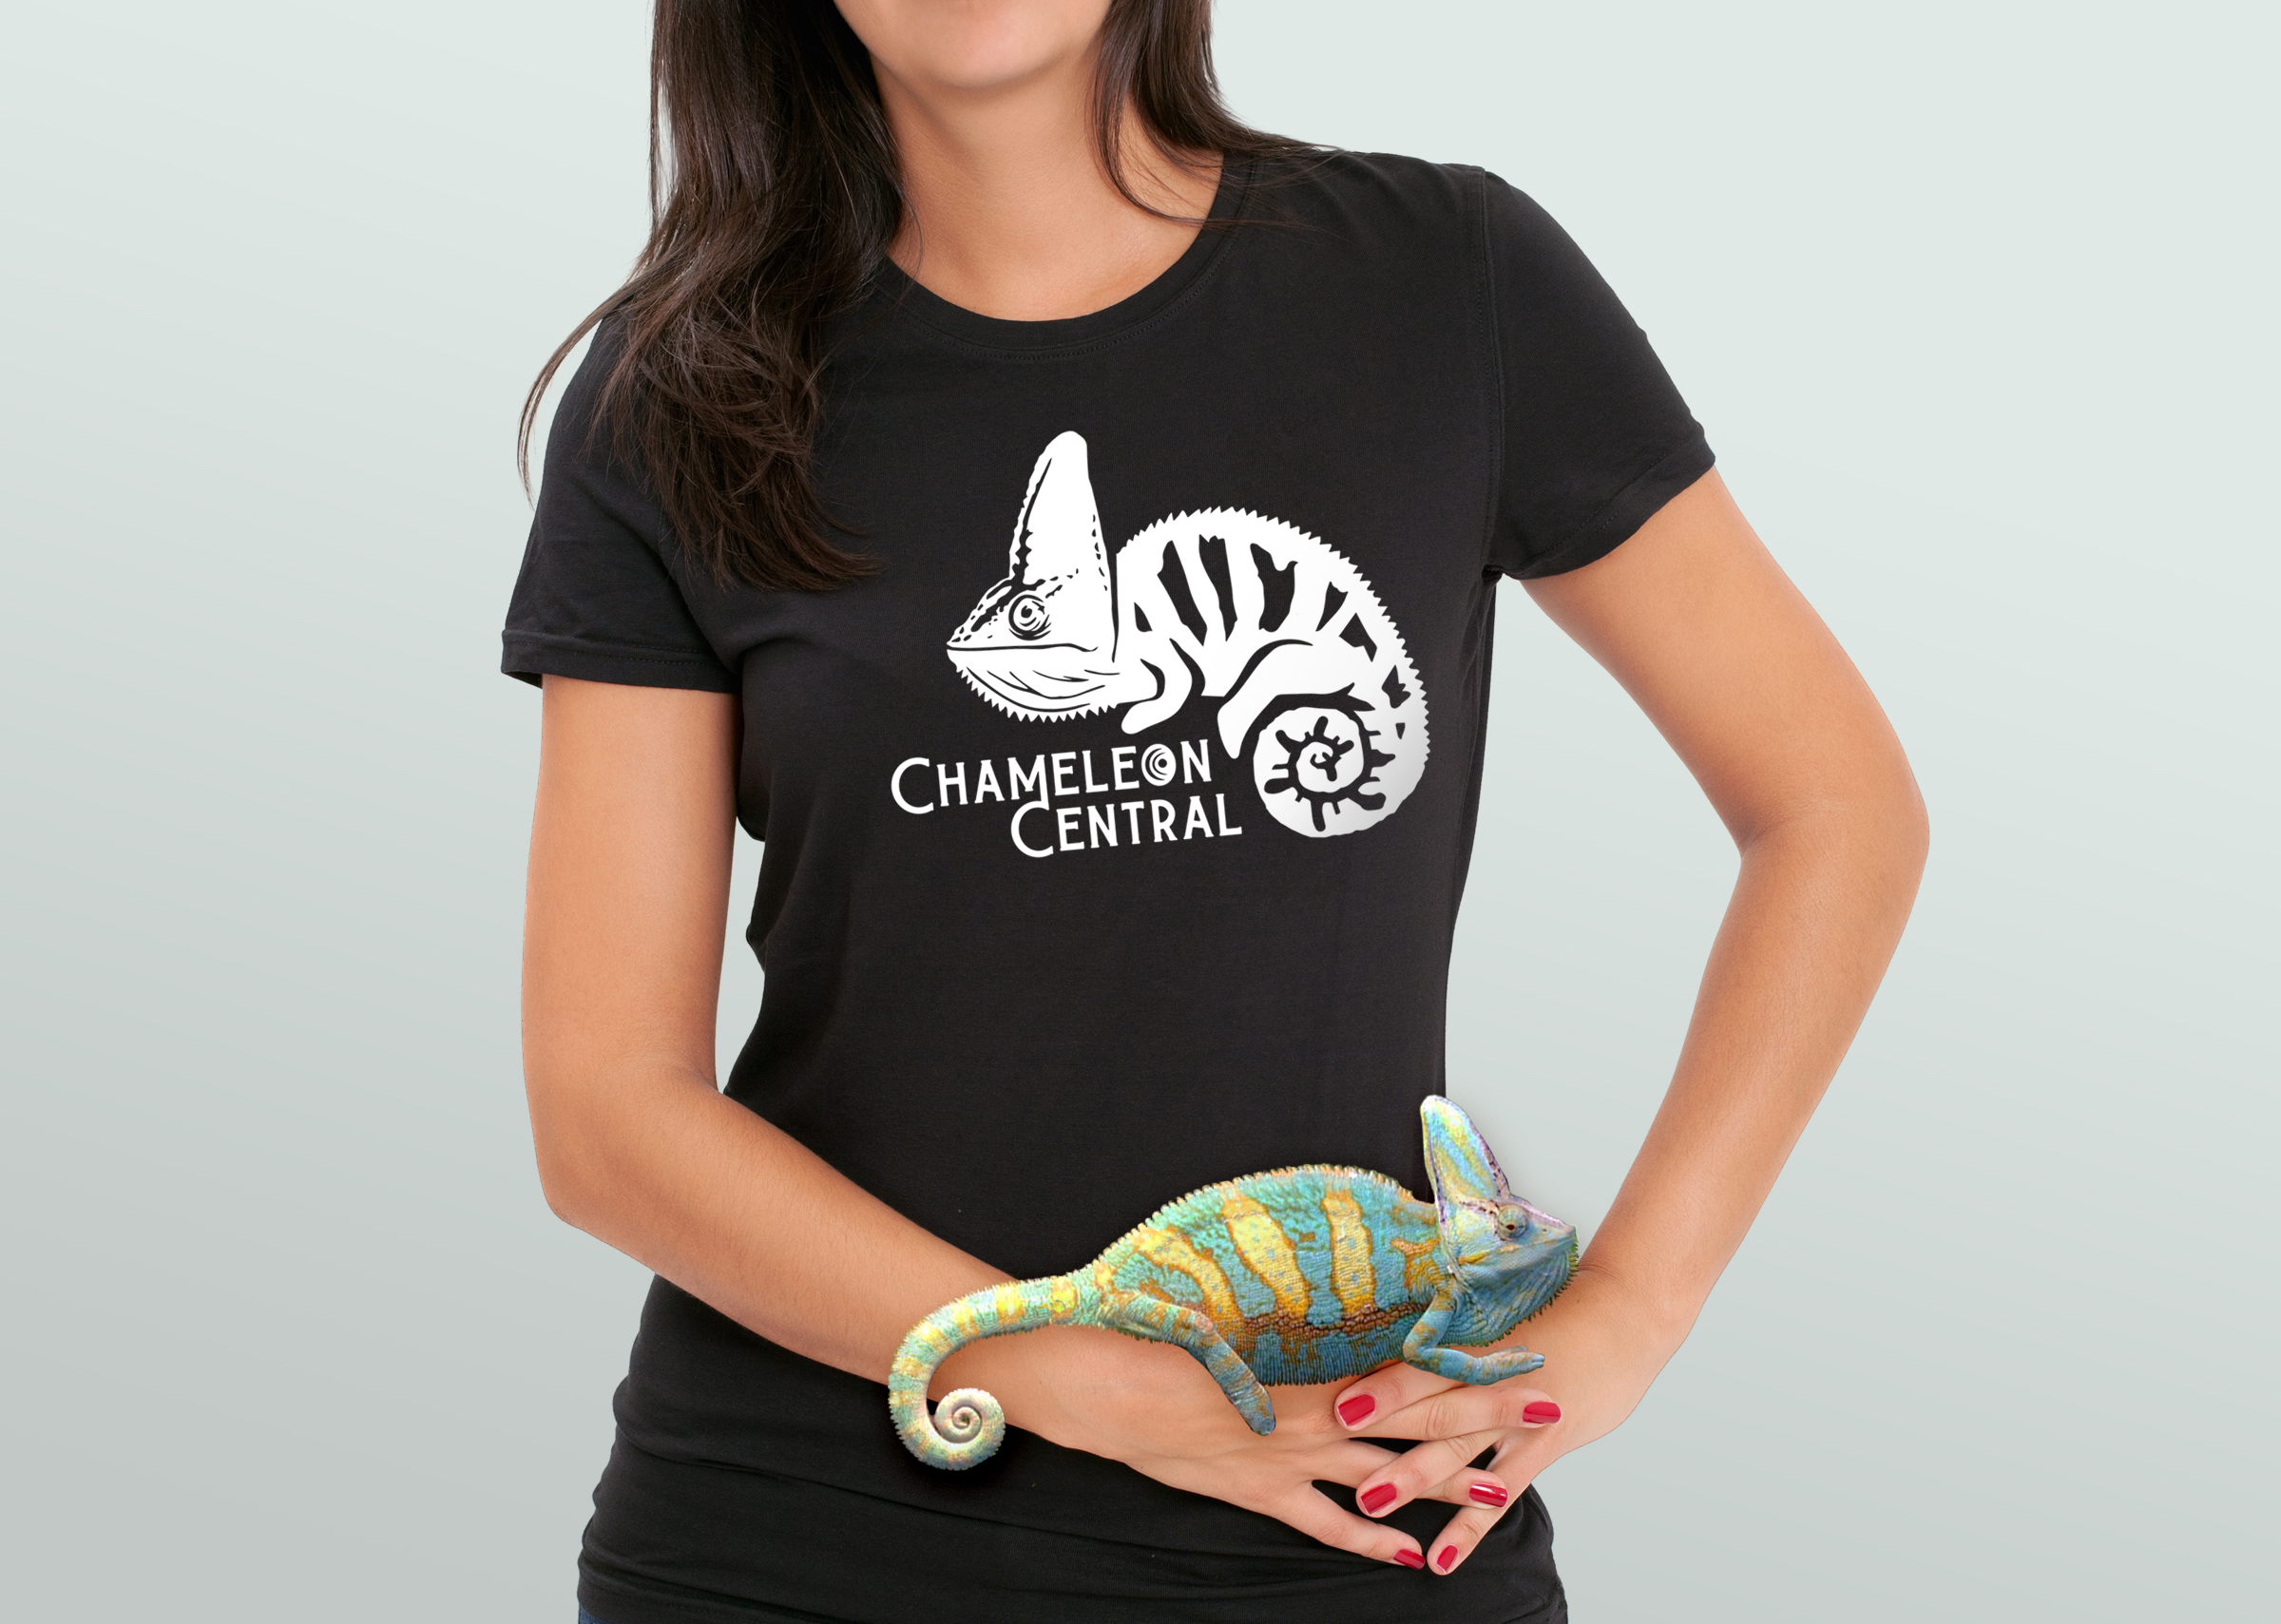 Chameleon Central Veiled Shirt